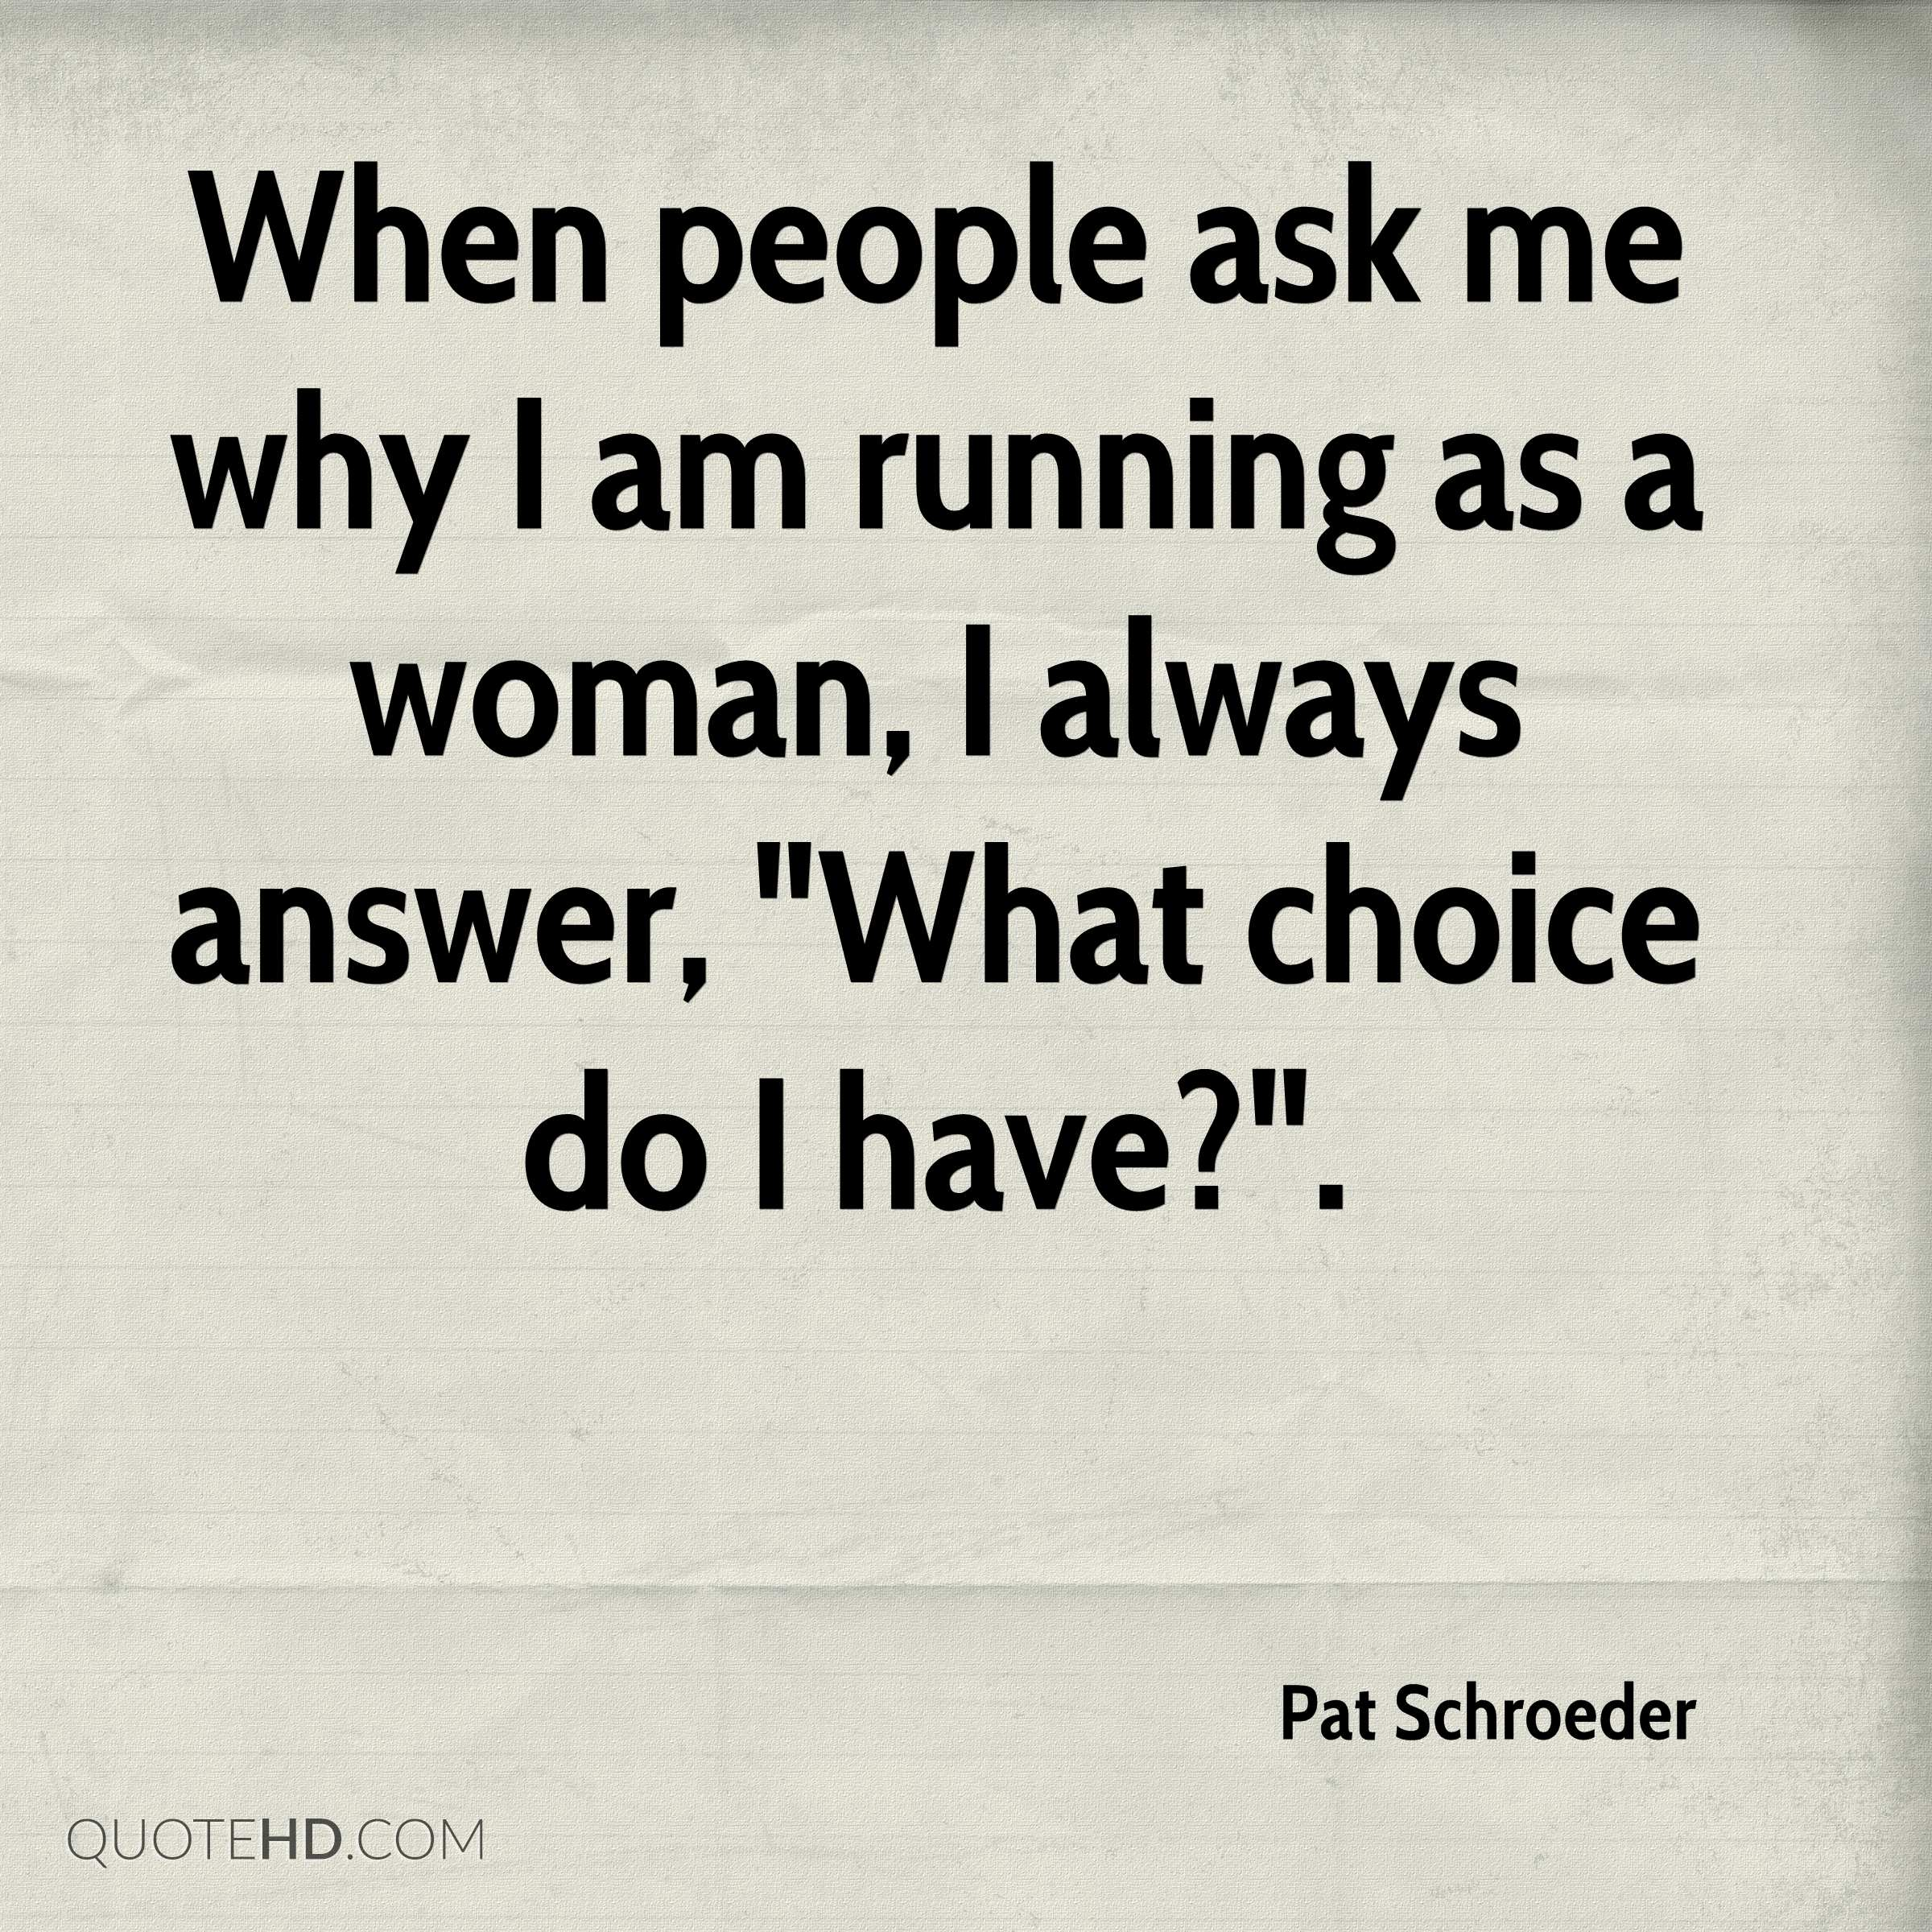 """When people ask me why I am running as a woman, I always answer, """"What choice do I have?""""."""